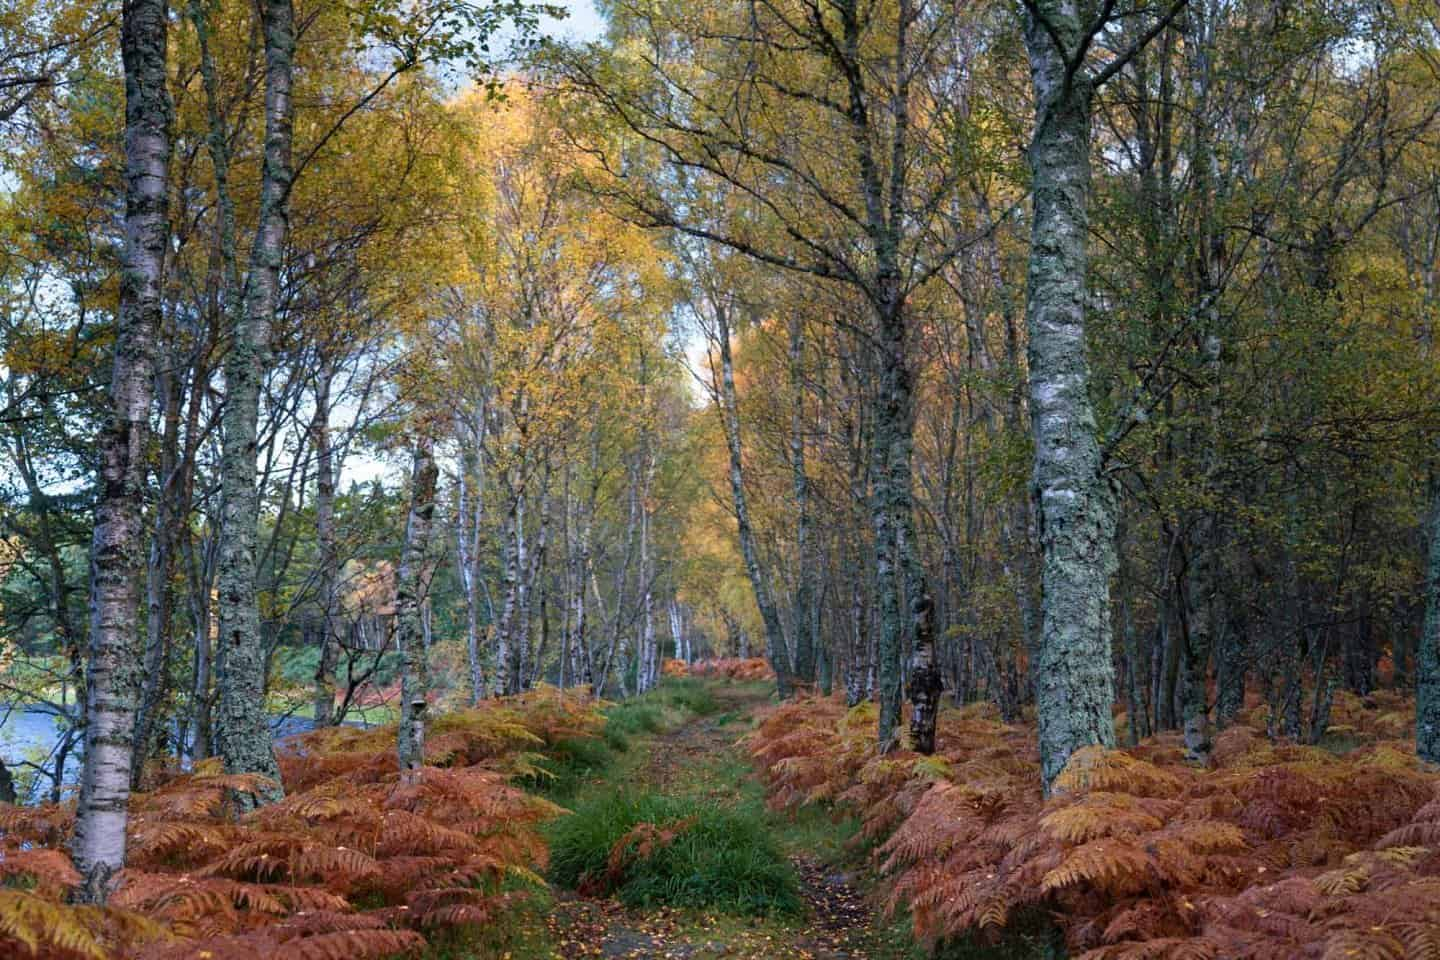 Autumn is a great time to spend 10 days in Scotland for the fall colors that flourish from floor to ceiling in Cairngorms National Park.